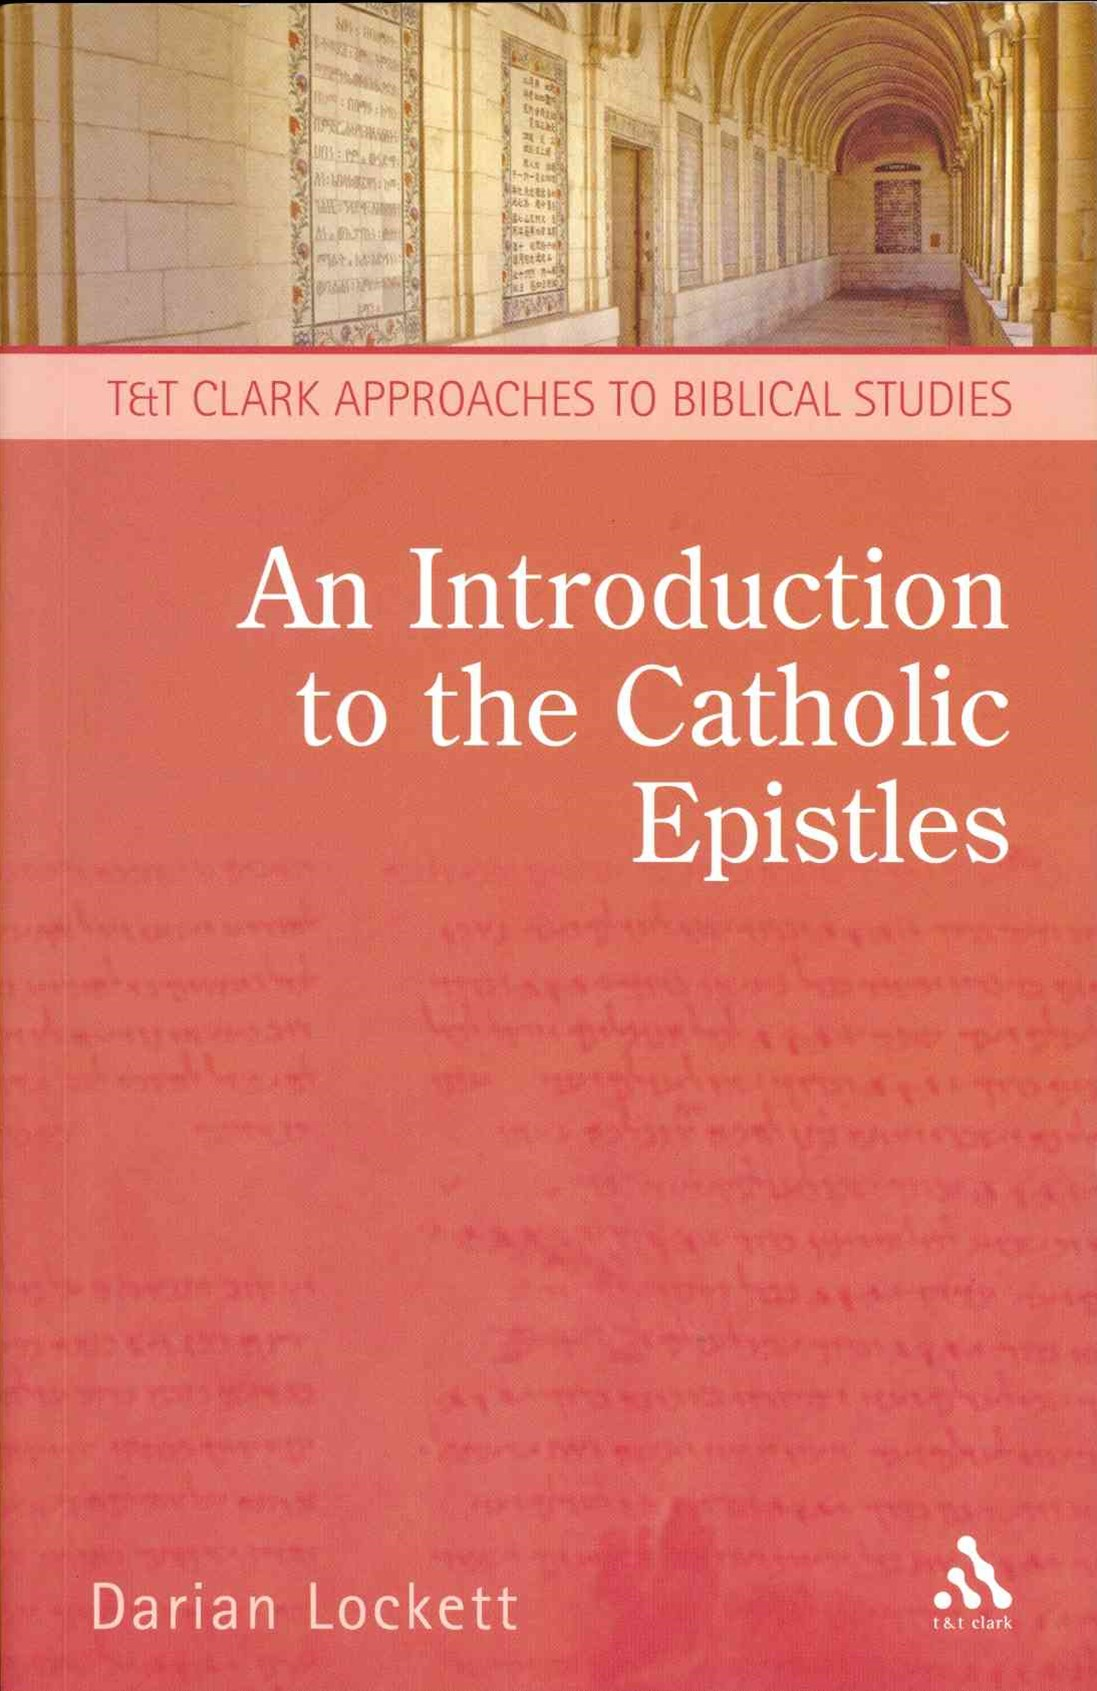 Introduction to the Catholic Epistles